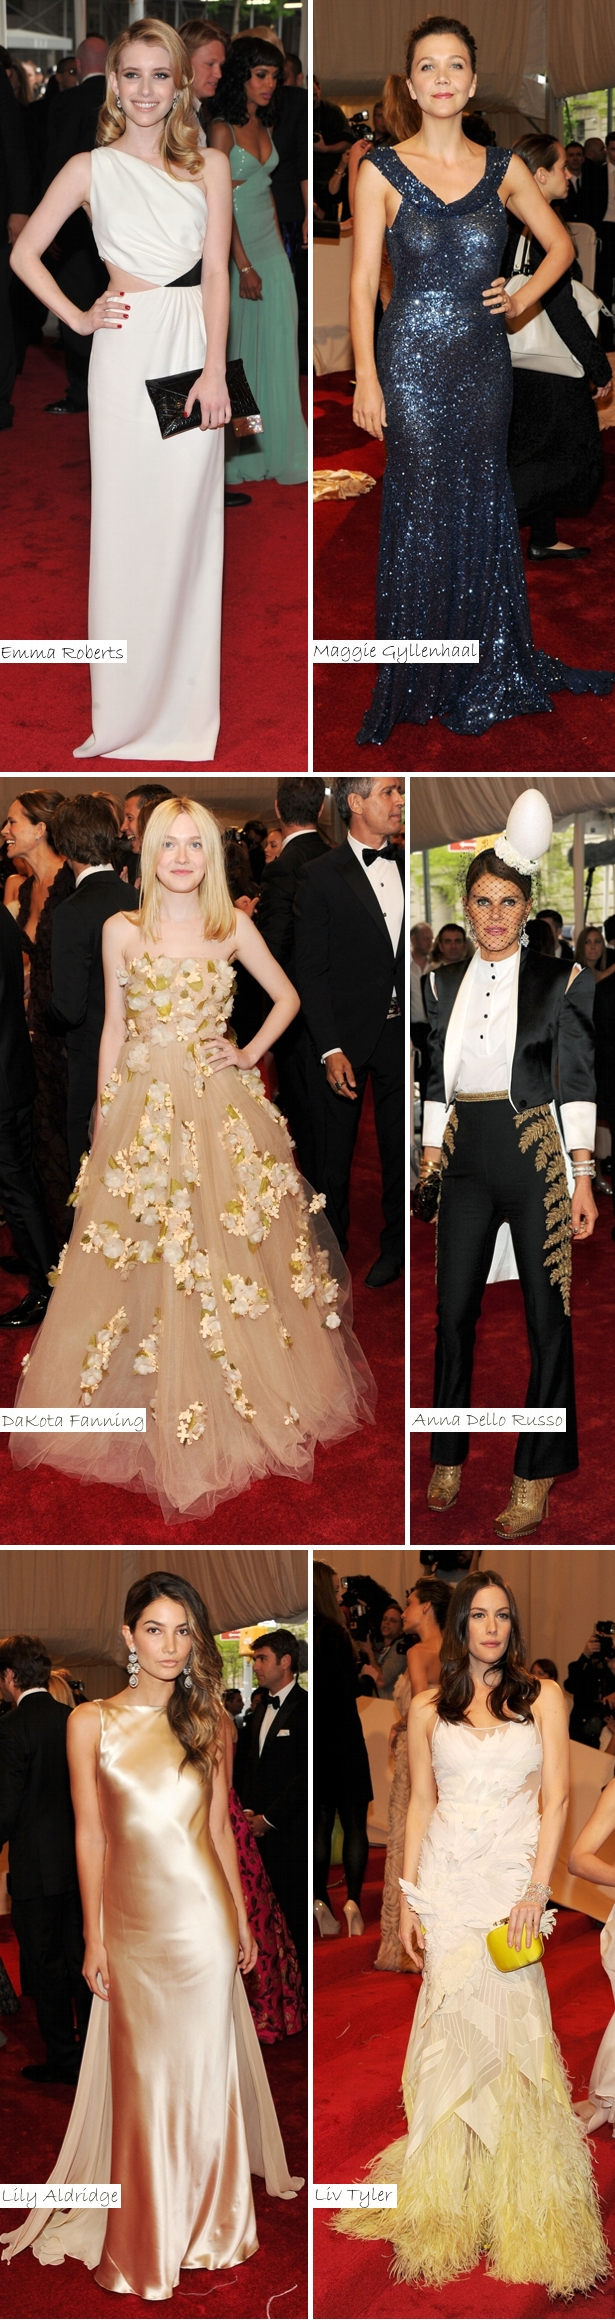 As Mais Bem Vestidas Met Ball 2011c Vote: As Mais Bem Vestidas do Met Ball 2011